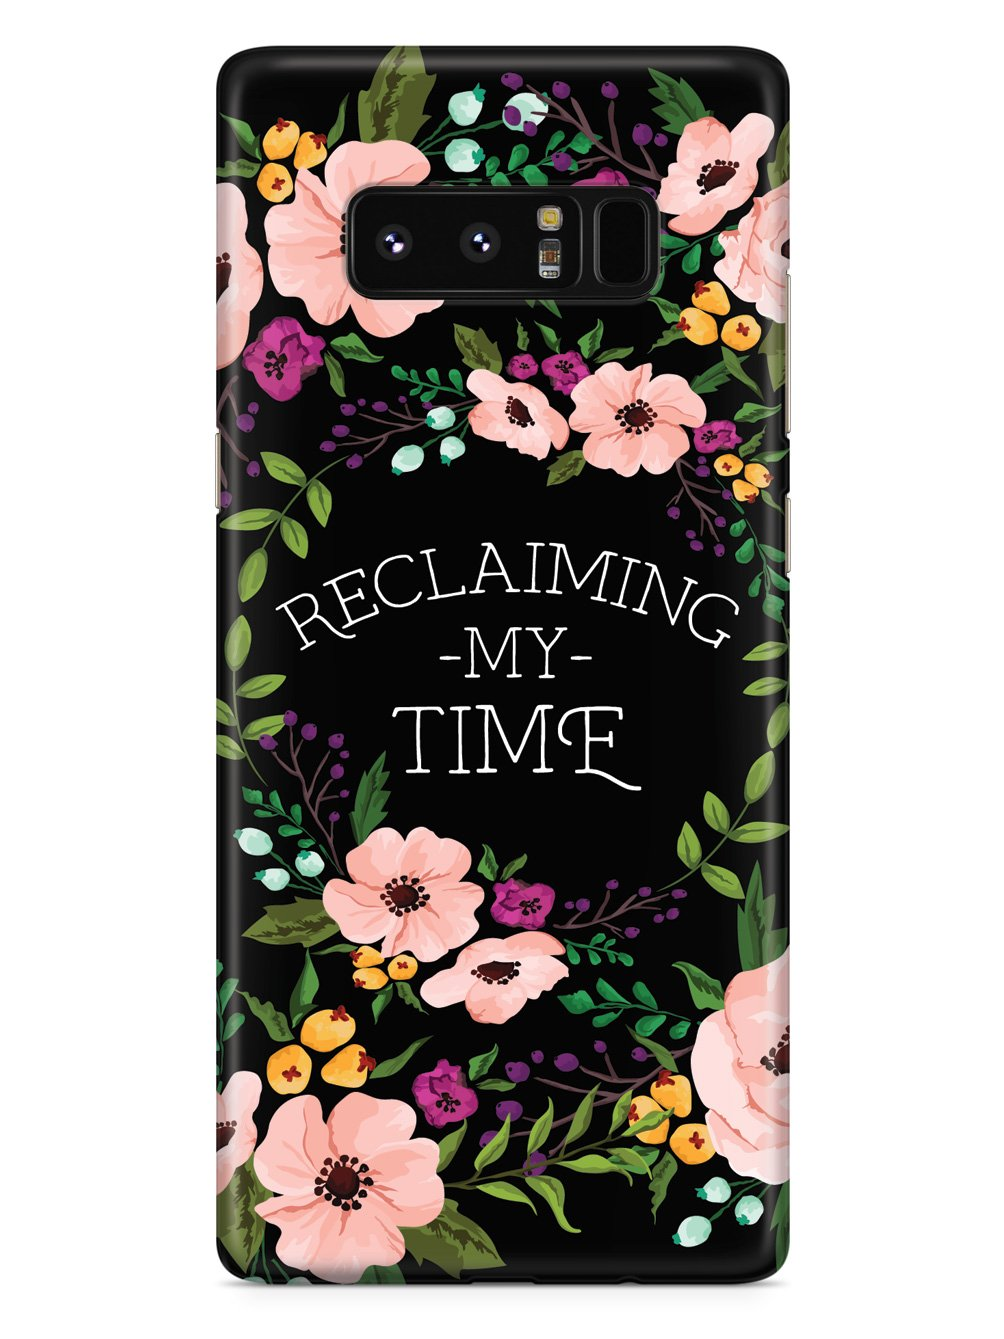 Reclaiming My Time - Flower Wreathe - Black Case - pipercleo.com